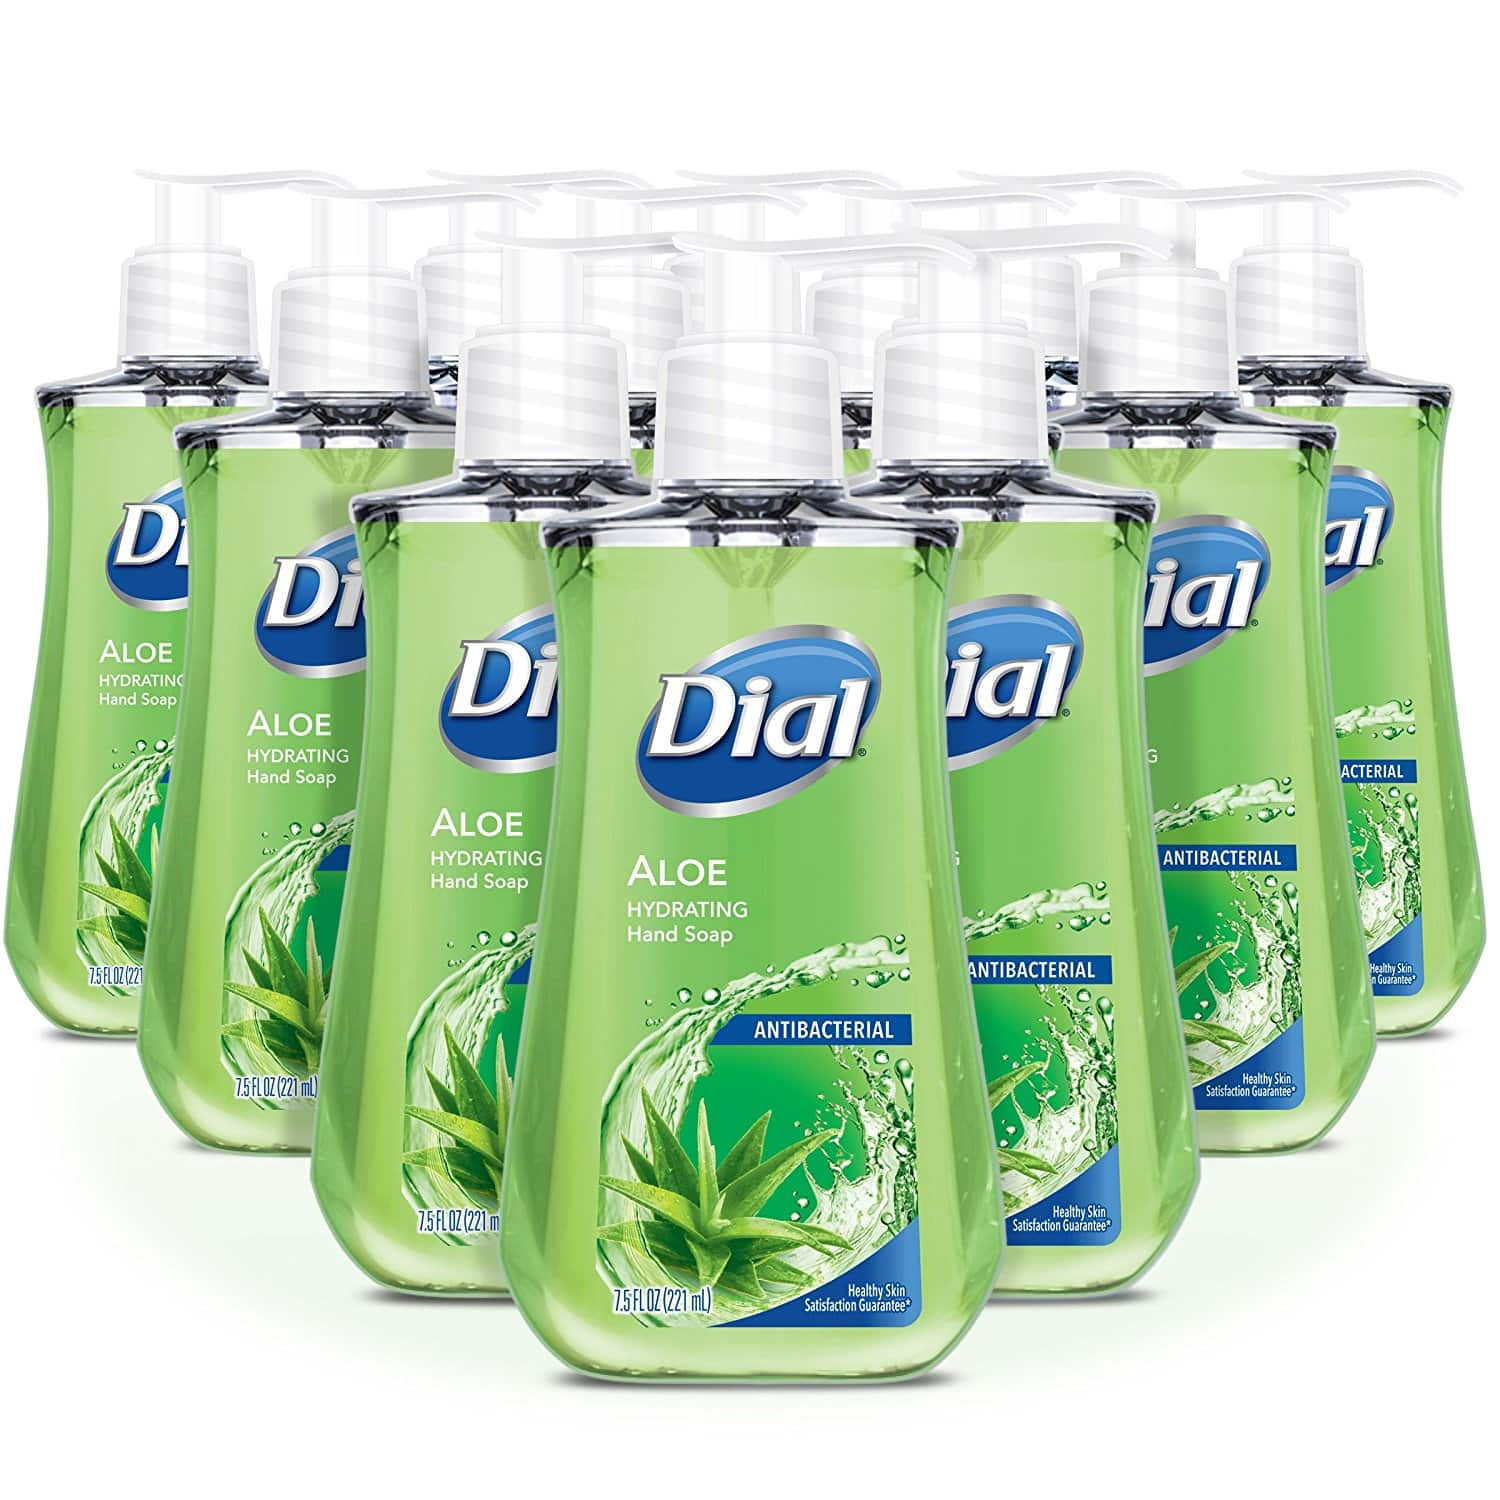 Pack of 12 - Dial Antibacterial Liquid Hand Soap, Aloe, 7.5 Fluid Ounces $11.29 w/ 5% S&S or $10.10 w/ 15% S&S